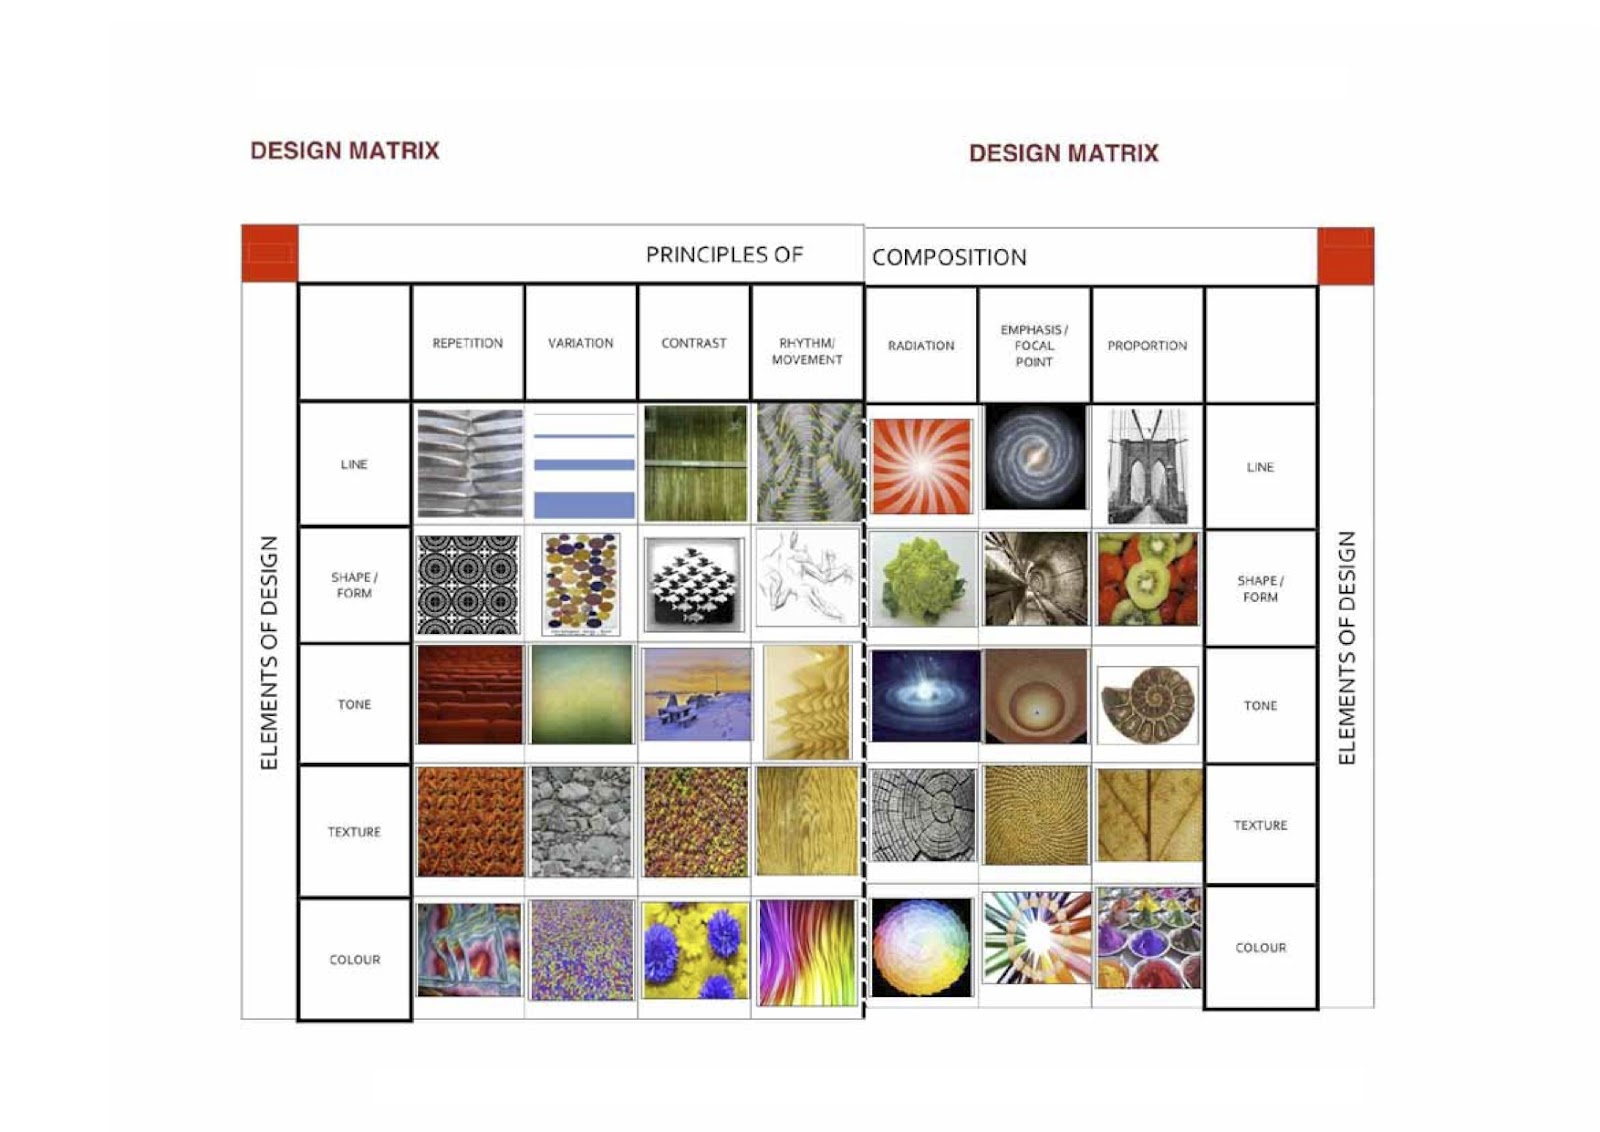 Elements And Design : Pltw elements and principles design matrix images art